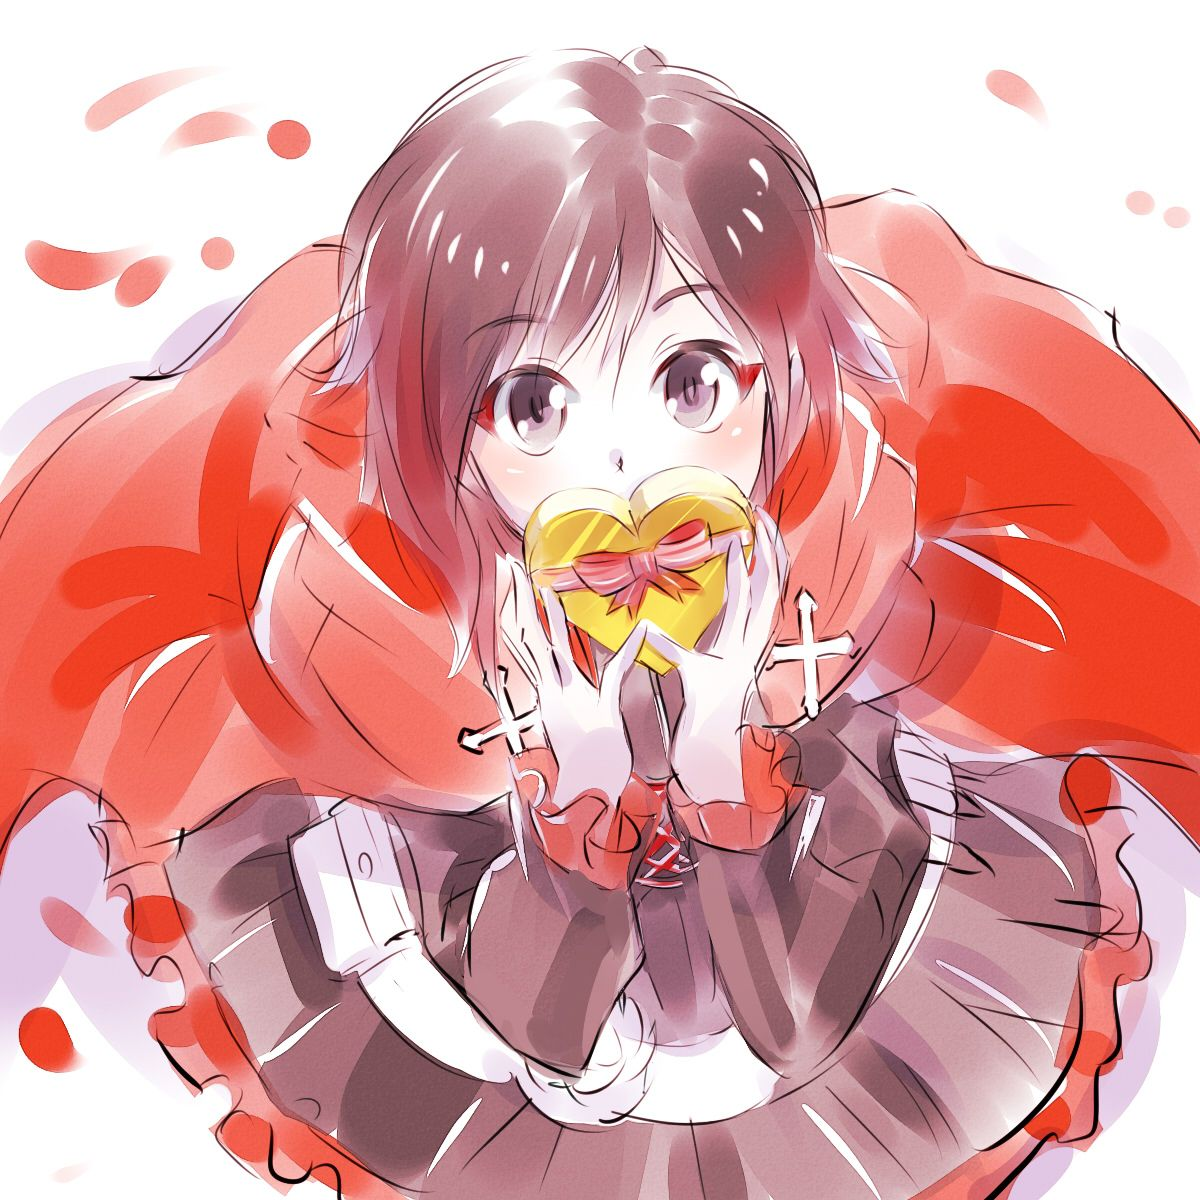 RWBY: A Valentine's Day Gift for You - Ruby (That's adorable!)